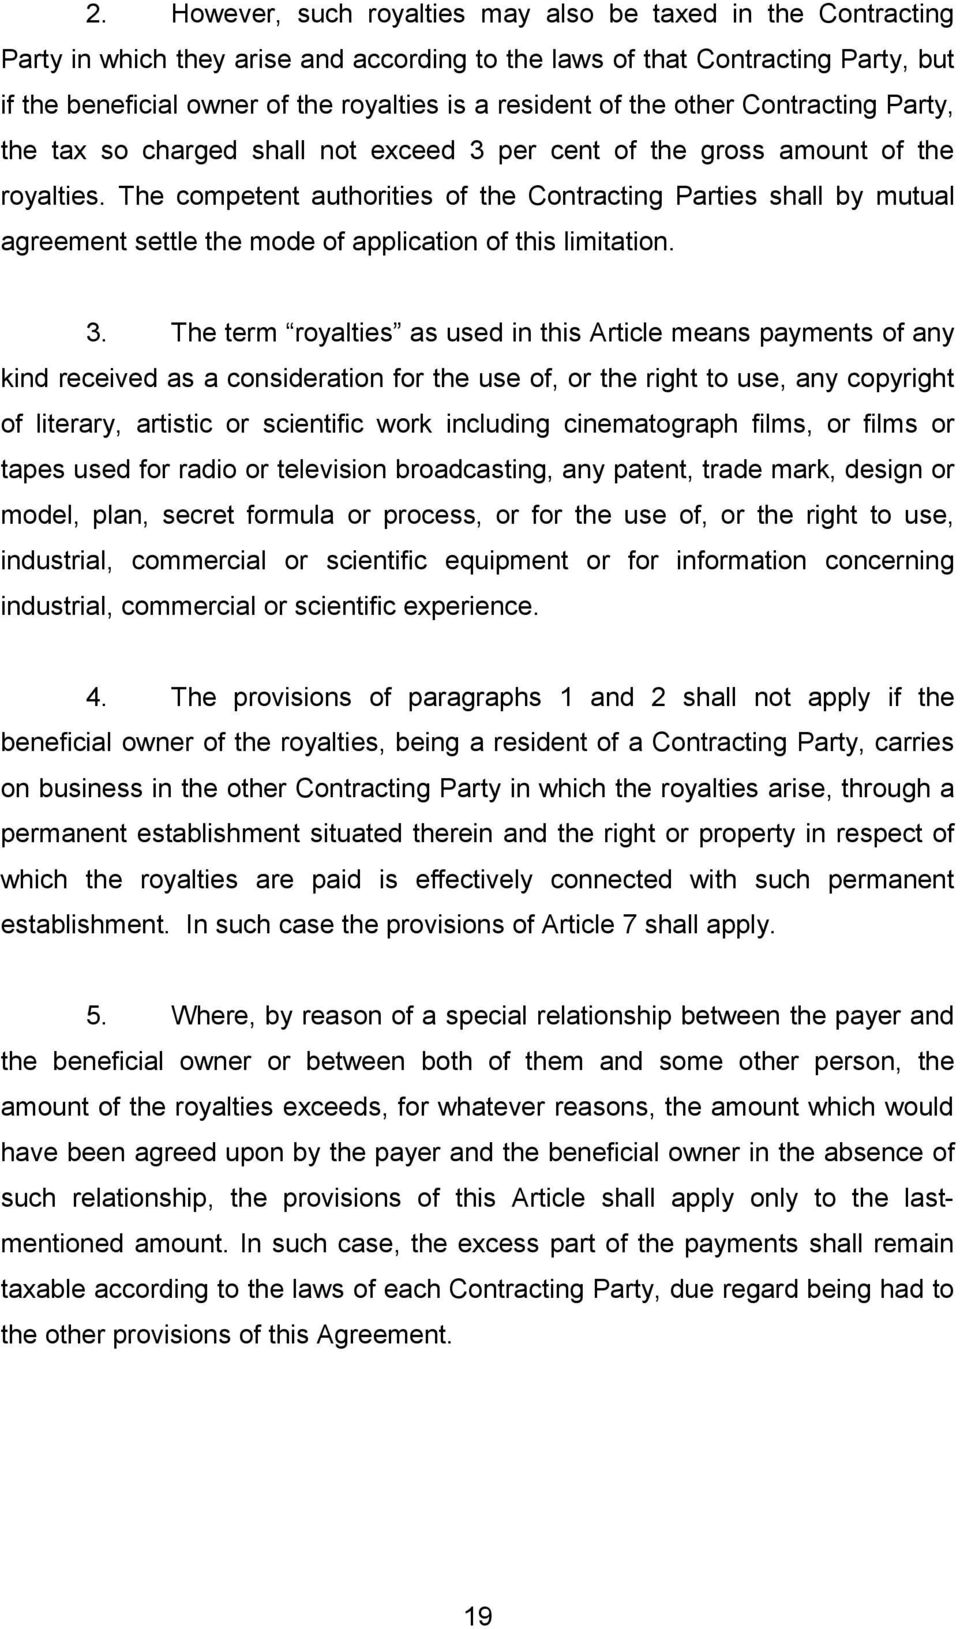 The competent authorities of the Contracting Parties shall by mutual agreement settle the mode of application of this limitation. 3.